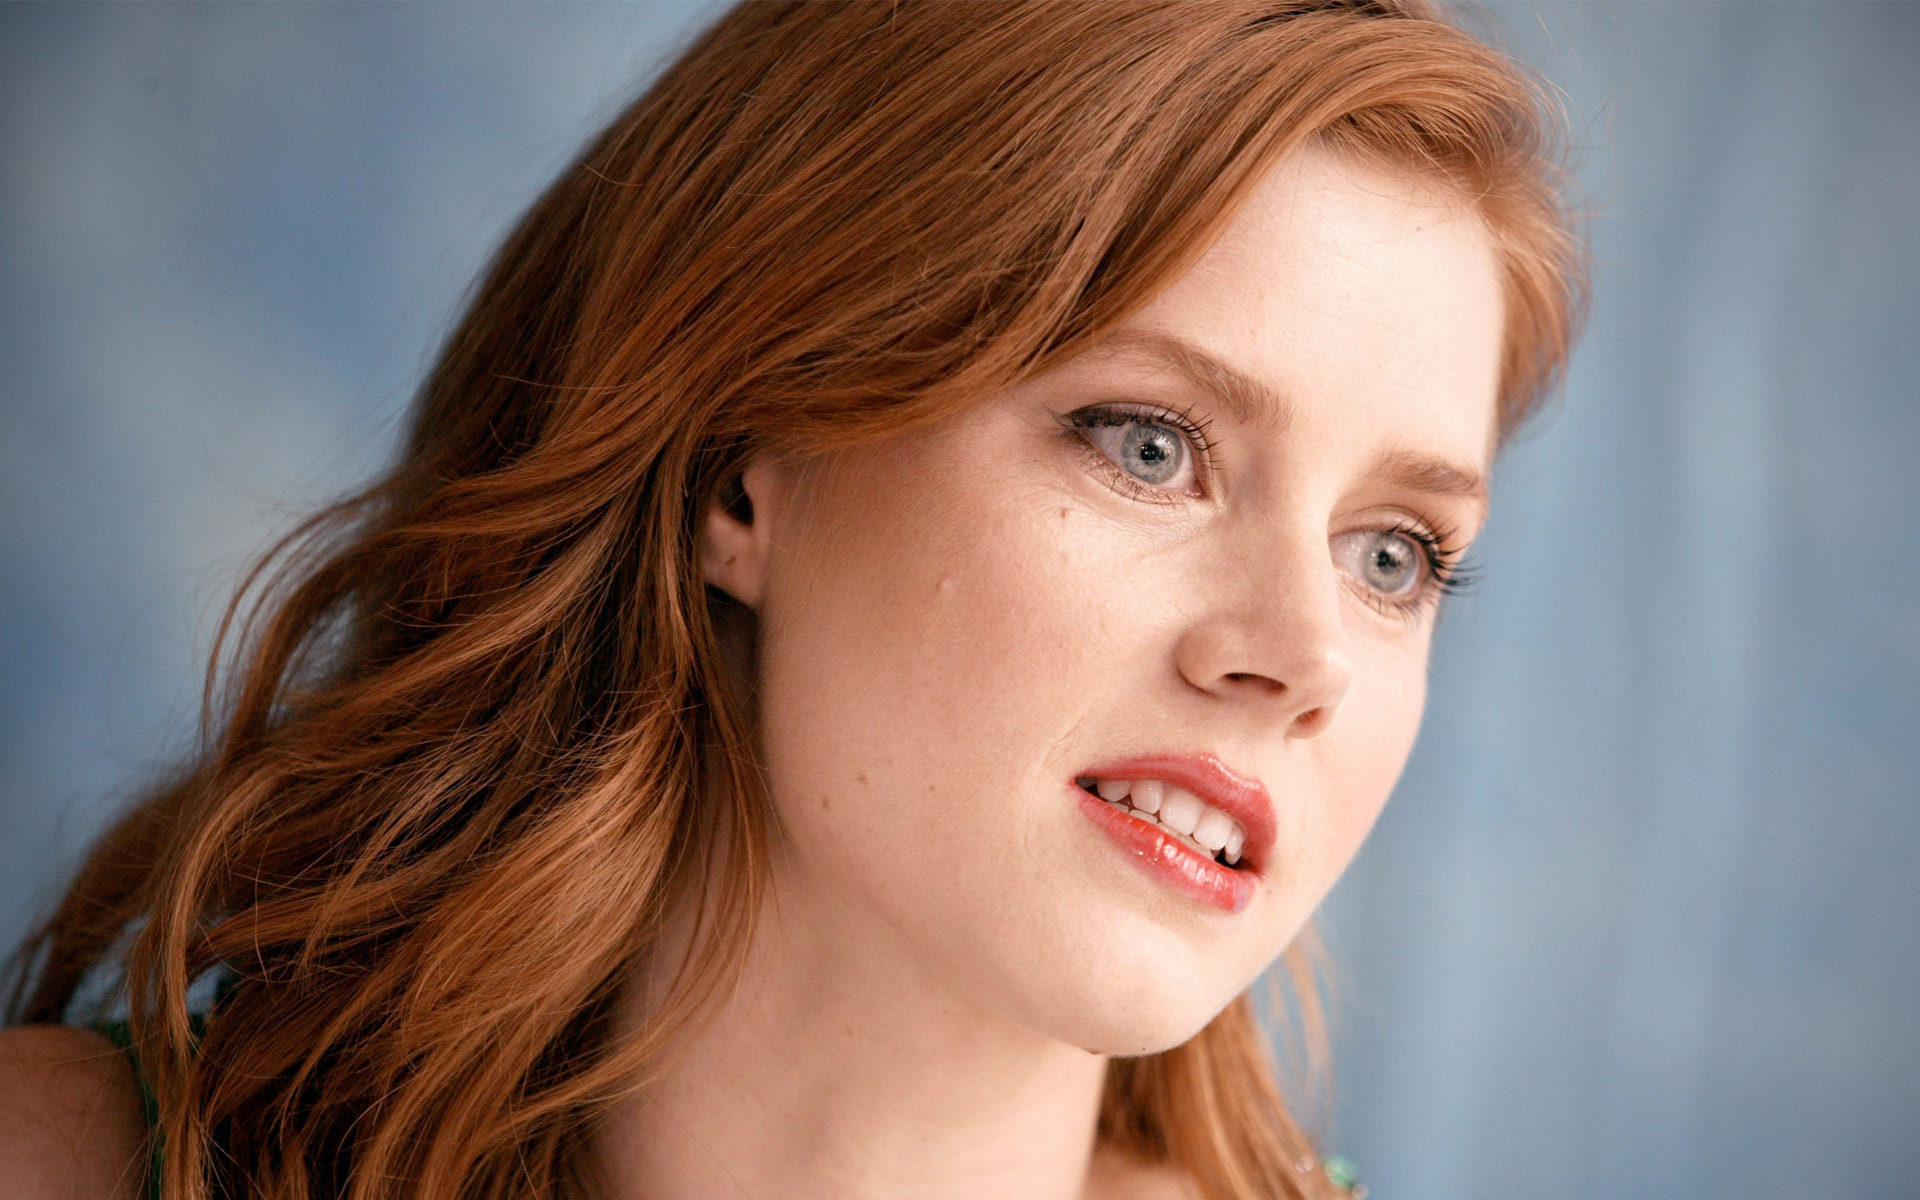 lovely amy adams taking somethink and smile look mobile free background download laptop images hd